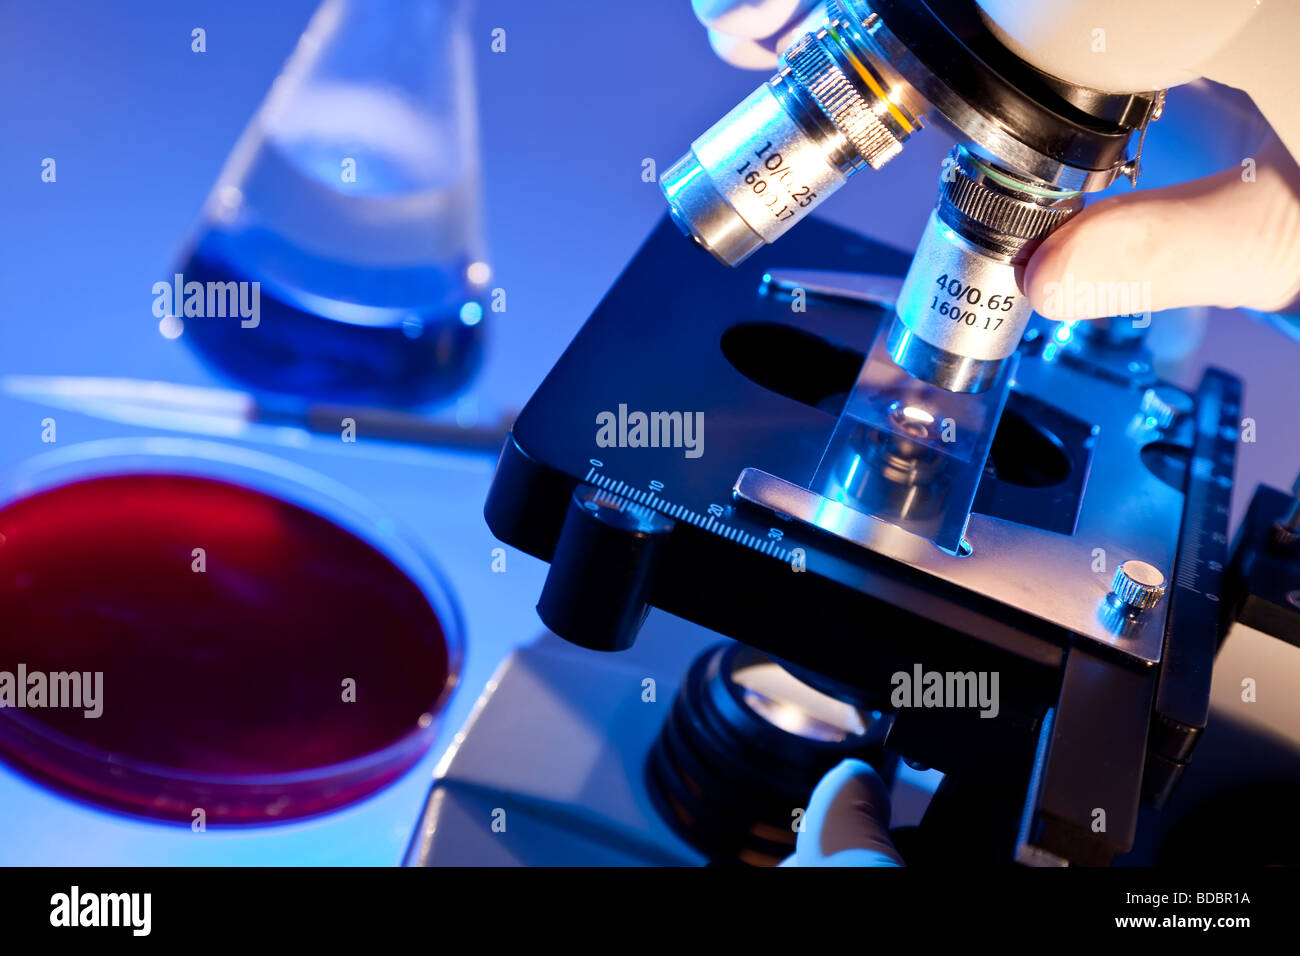 A medical or scientific researcher using a microscope in a laboratory environment with conical flask pipette and - Stock Image